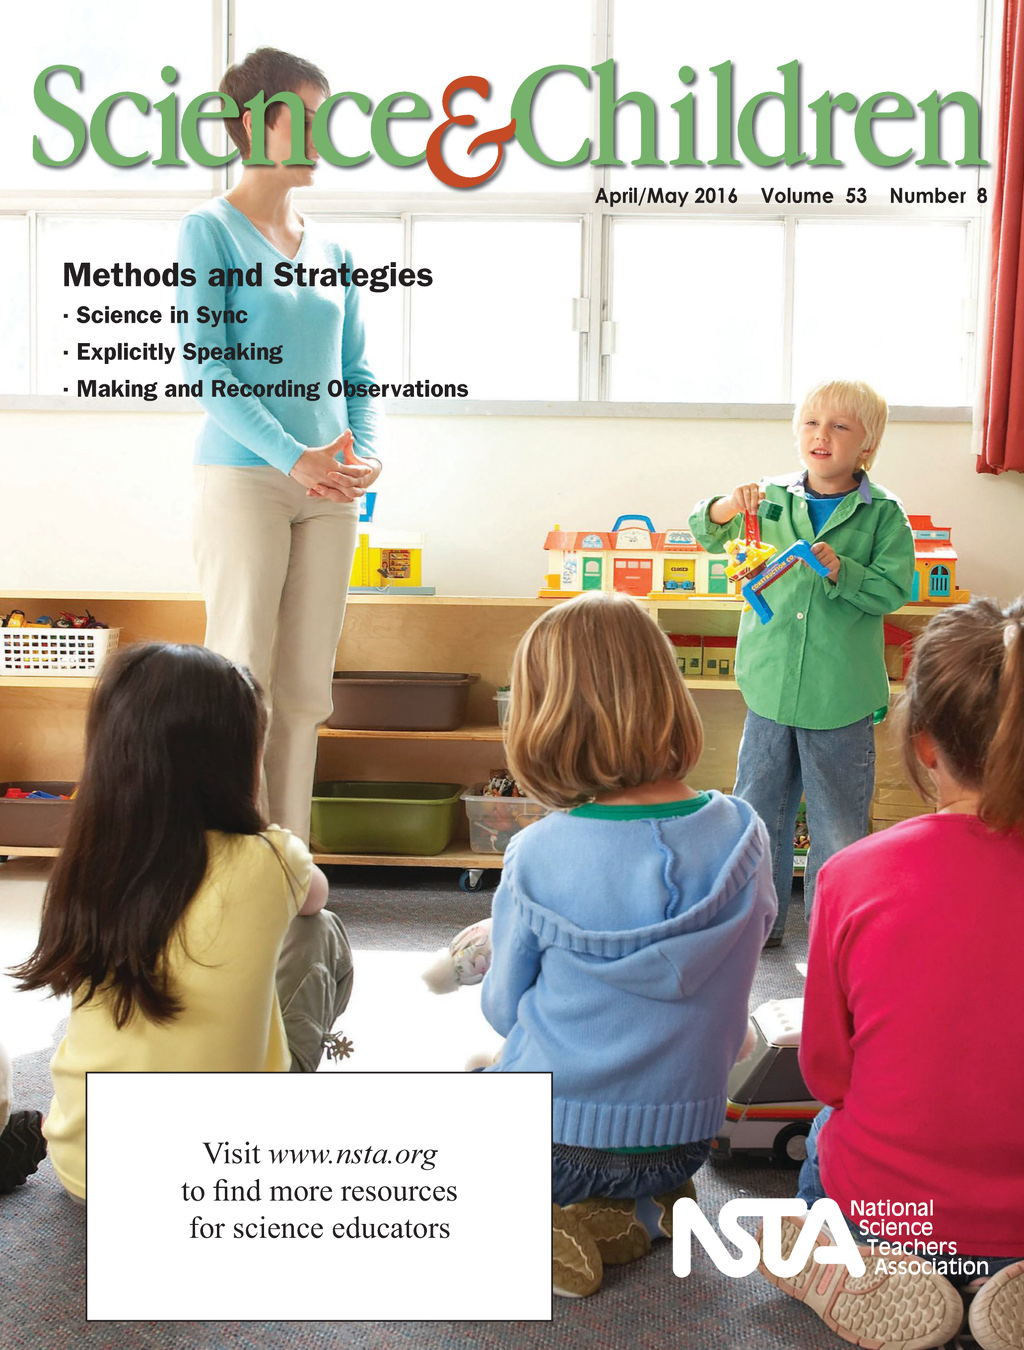 Science and Children April/May 2016